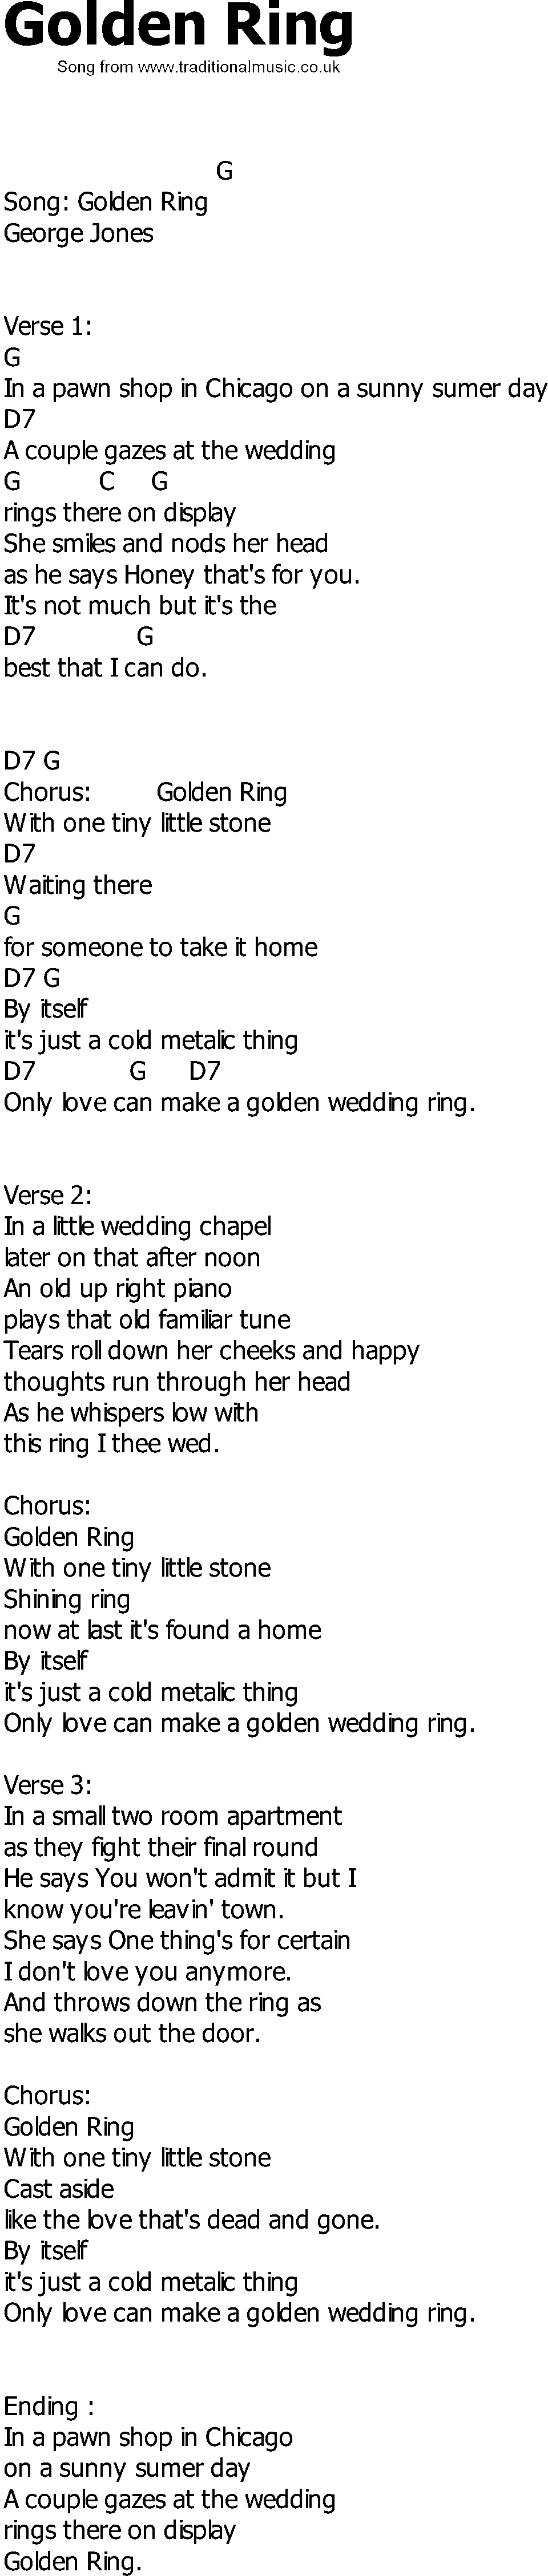 Country song lyrics with chords Golden Ring